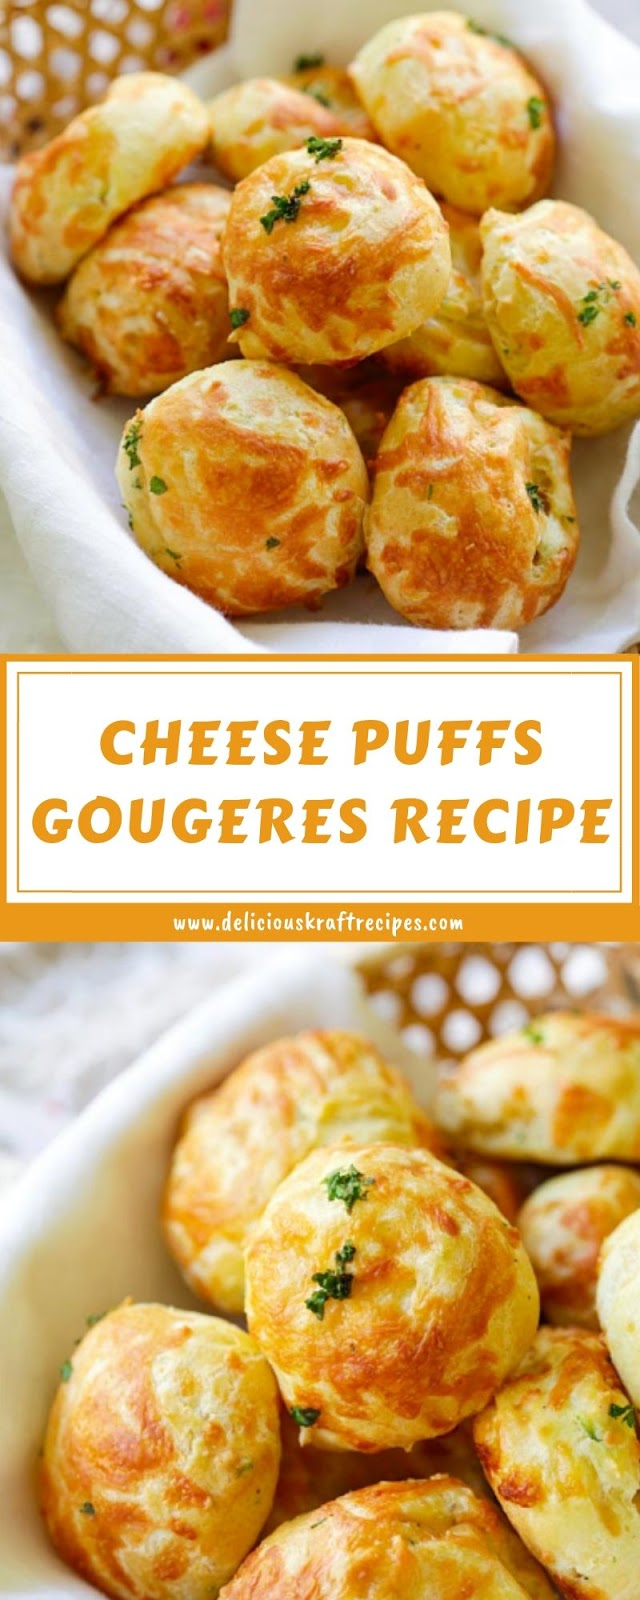 CHEESE  PUFFS GOUGERES RECIPE